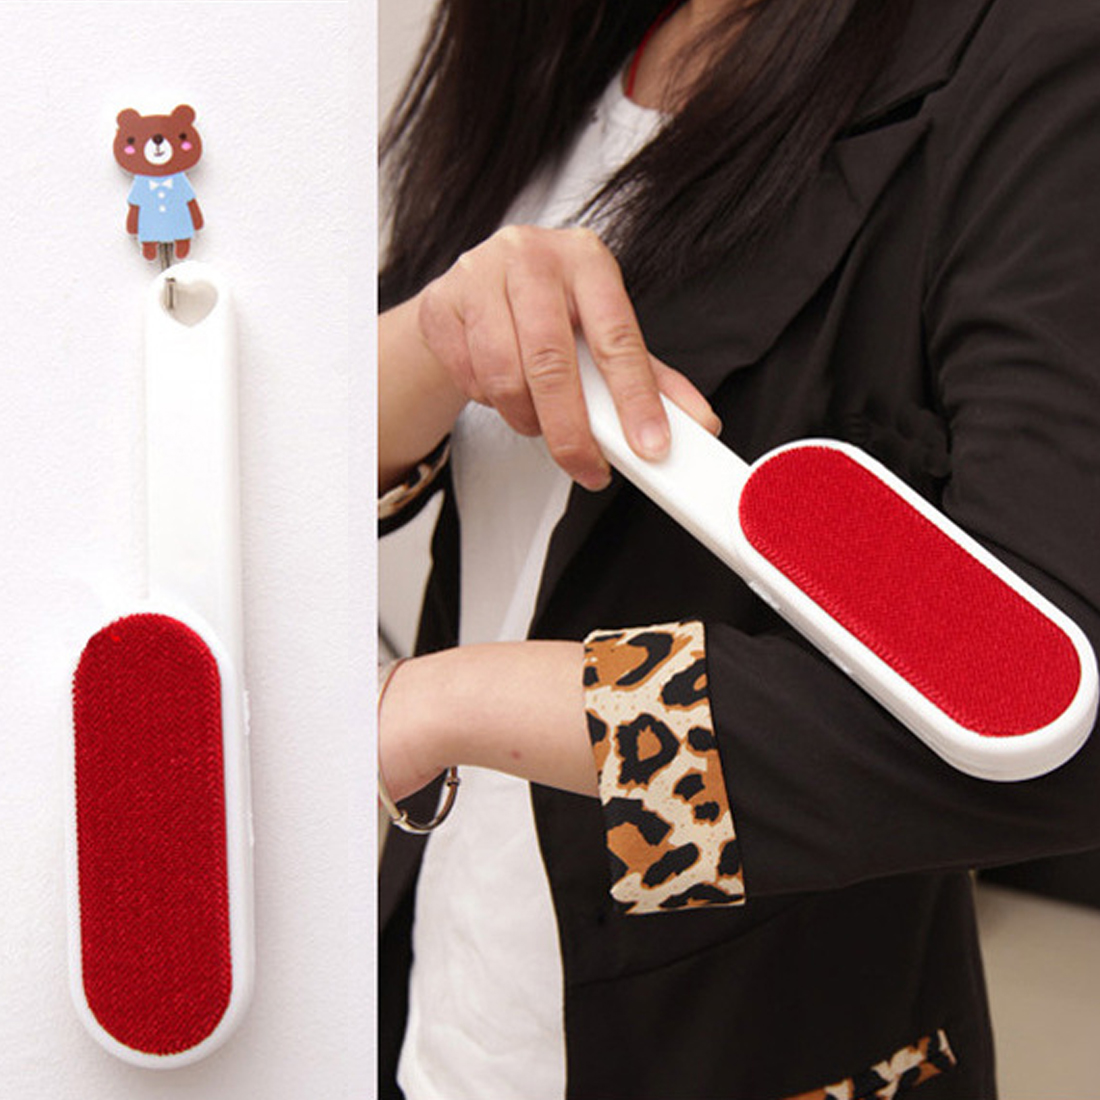 Top Sale 1pc Magic Lint Dust Brush Pet Hair Remover Clothing Cloth Dry Cleaning with Rotatable Static Brush Clothes